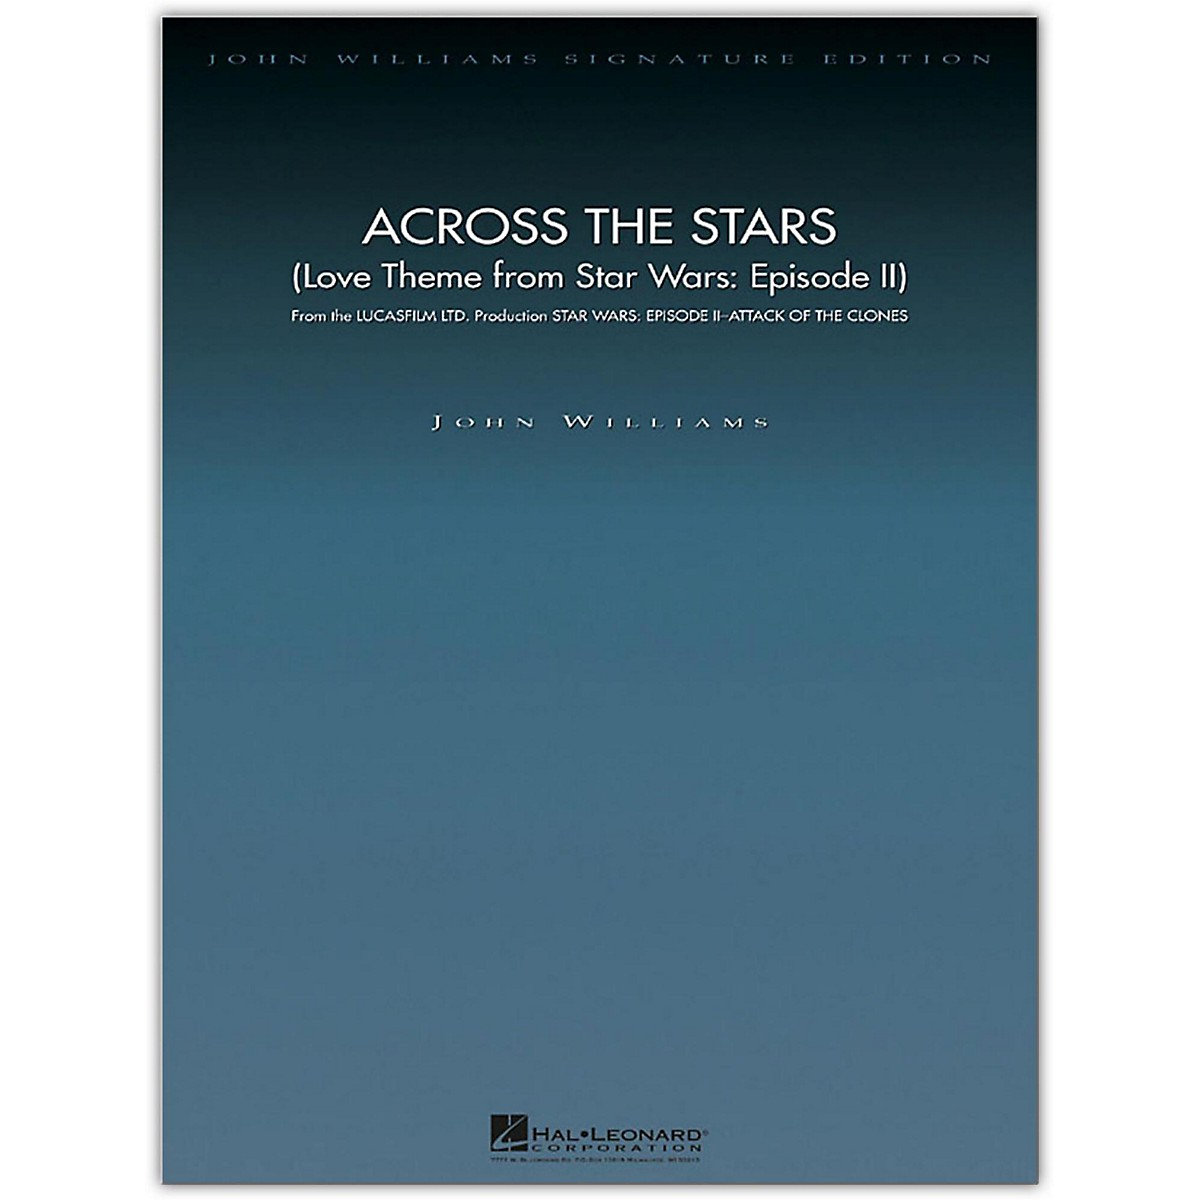 Hal Leonard Across the Stars (Love Theme from Star Wars: Episode II) John Williams Signature Edition Orchestra